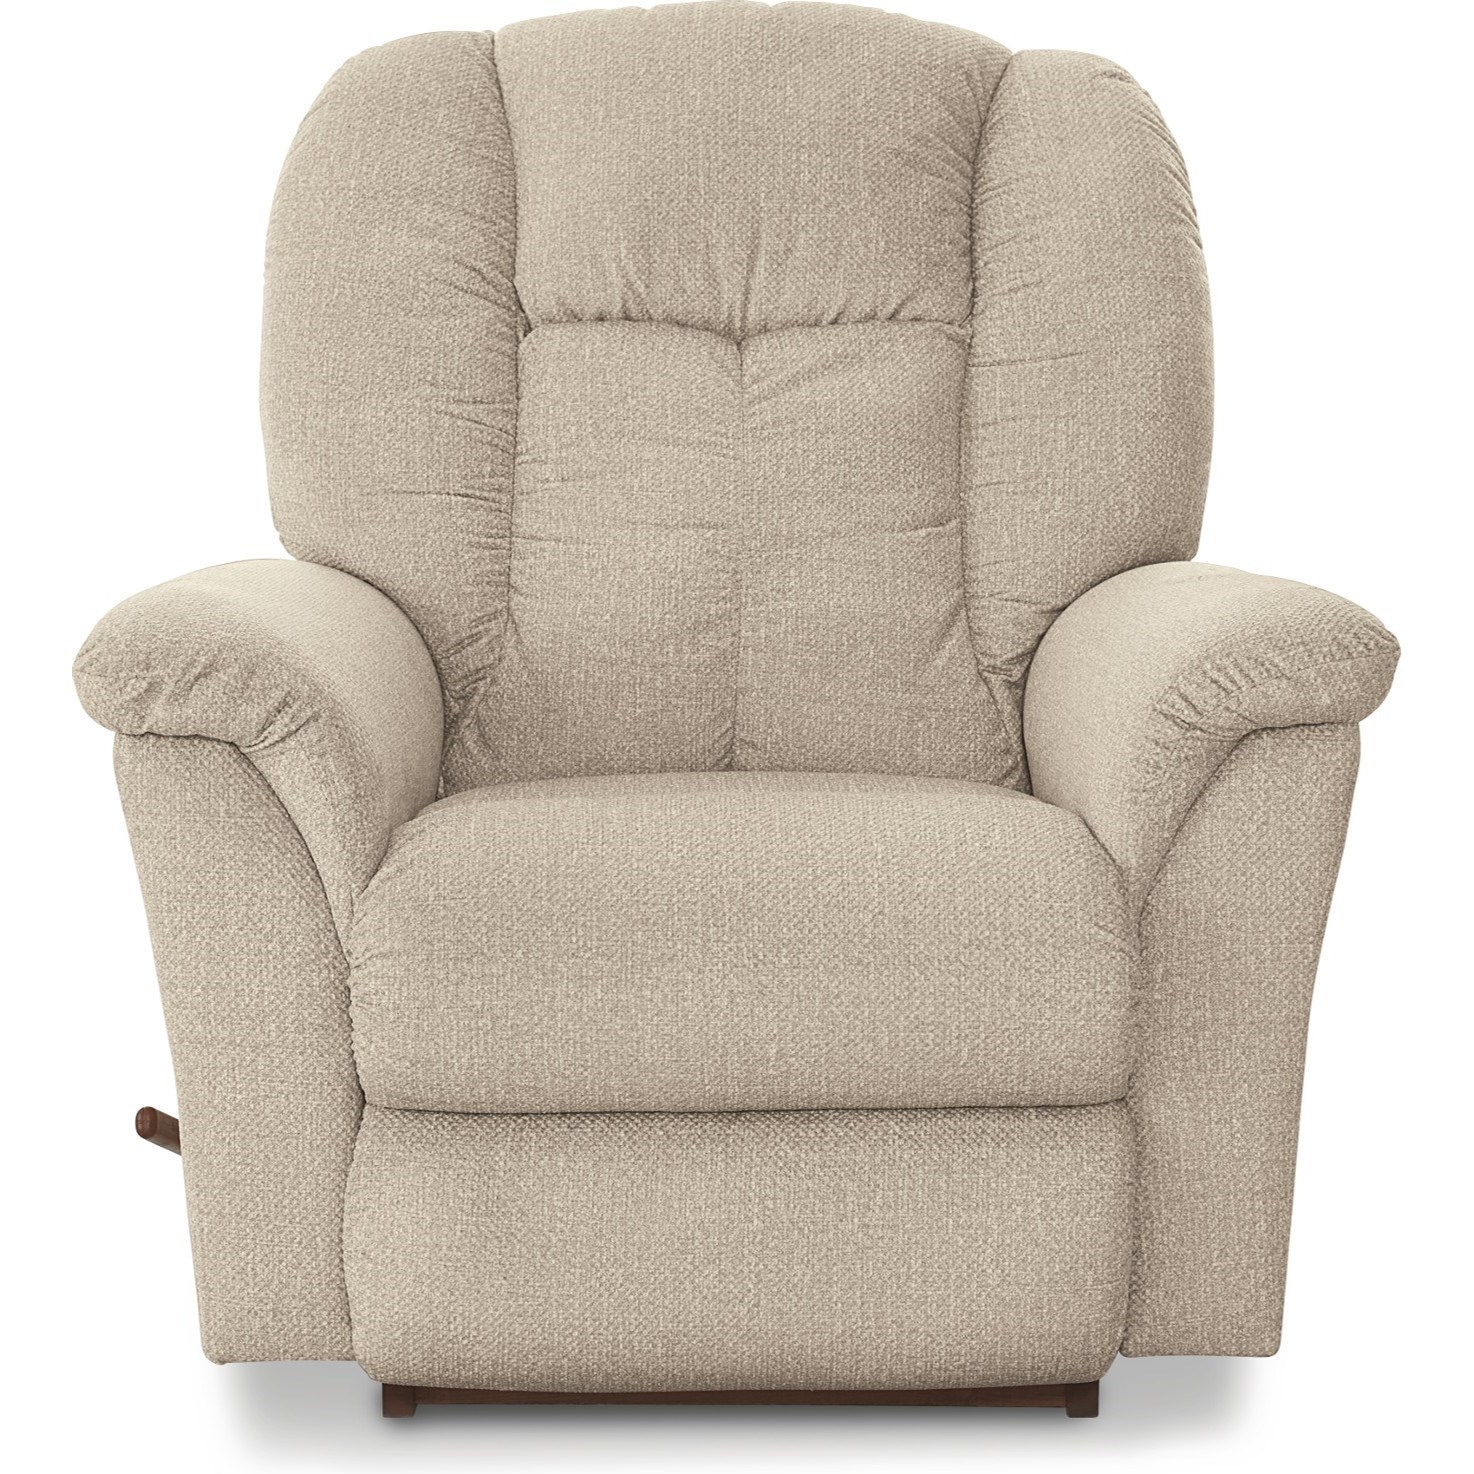 Recliners Jasper Wall Recliner by La-Z-Boy at VanDrie Home Furnishings